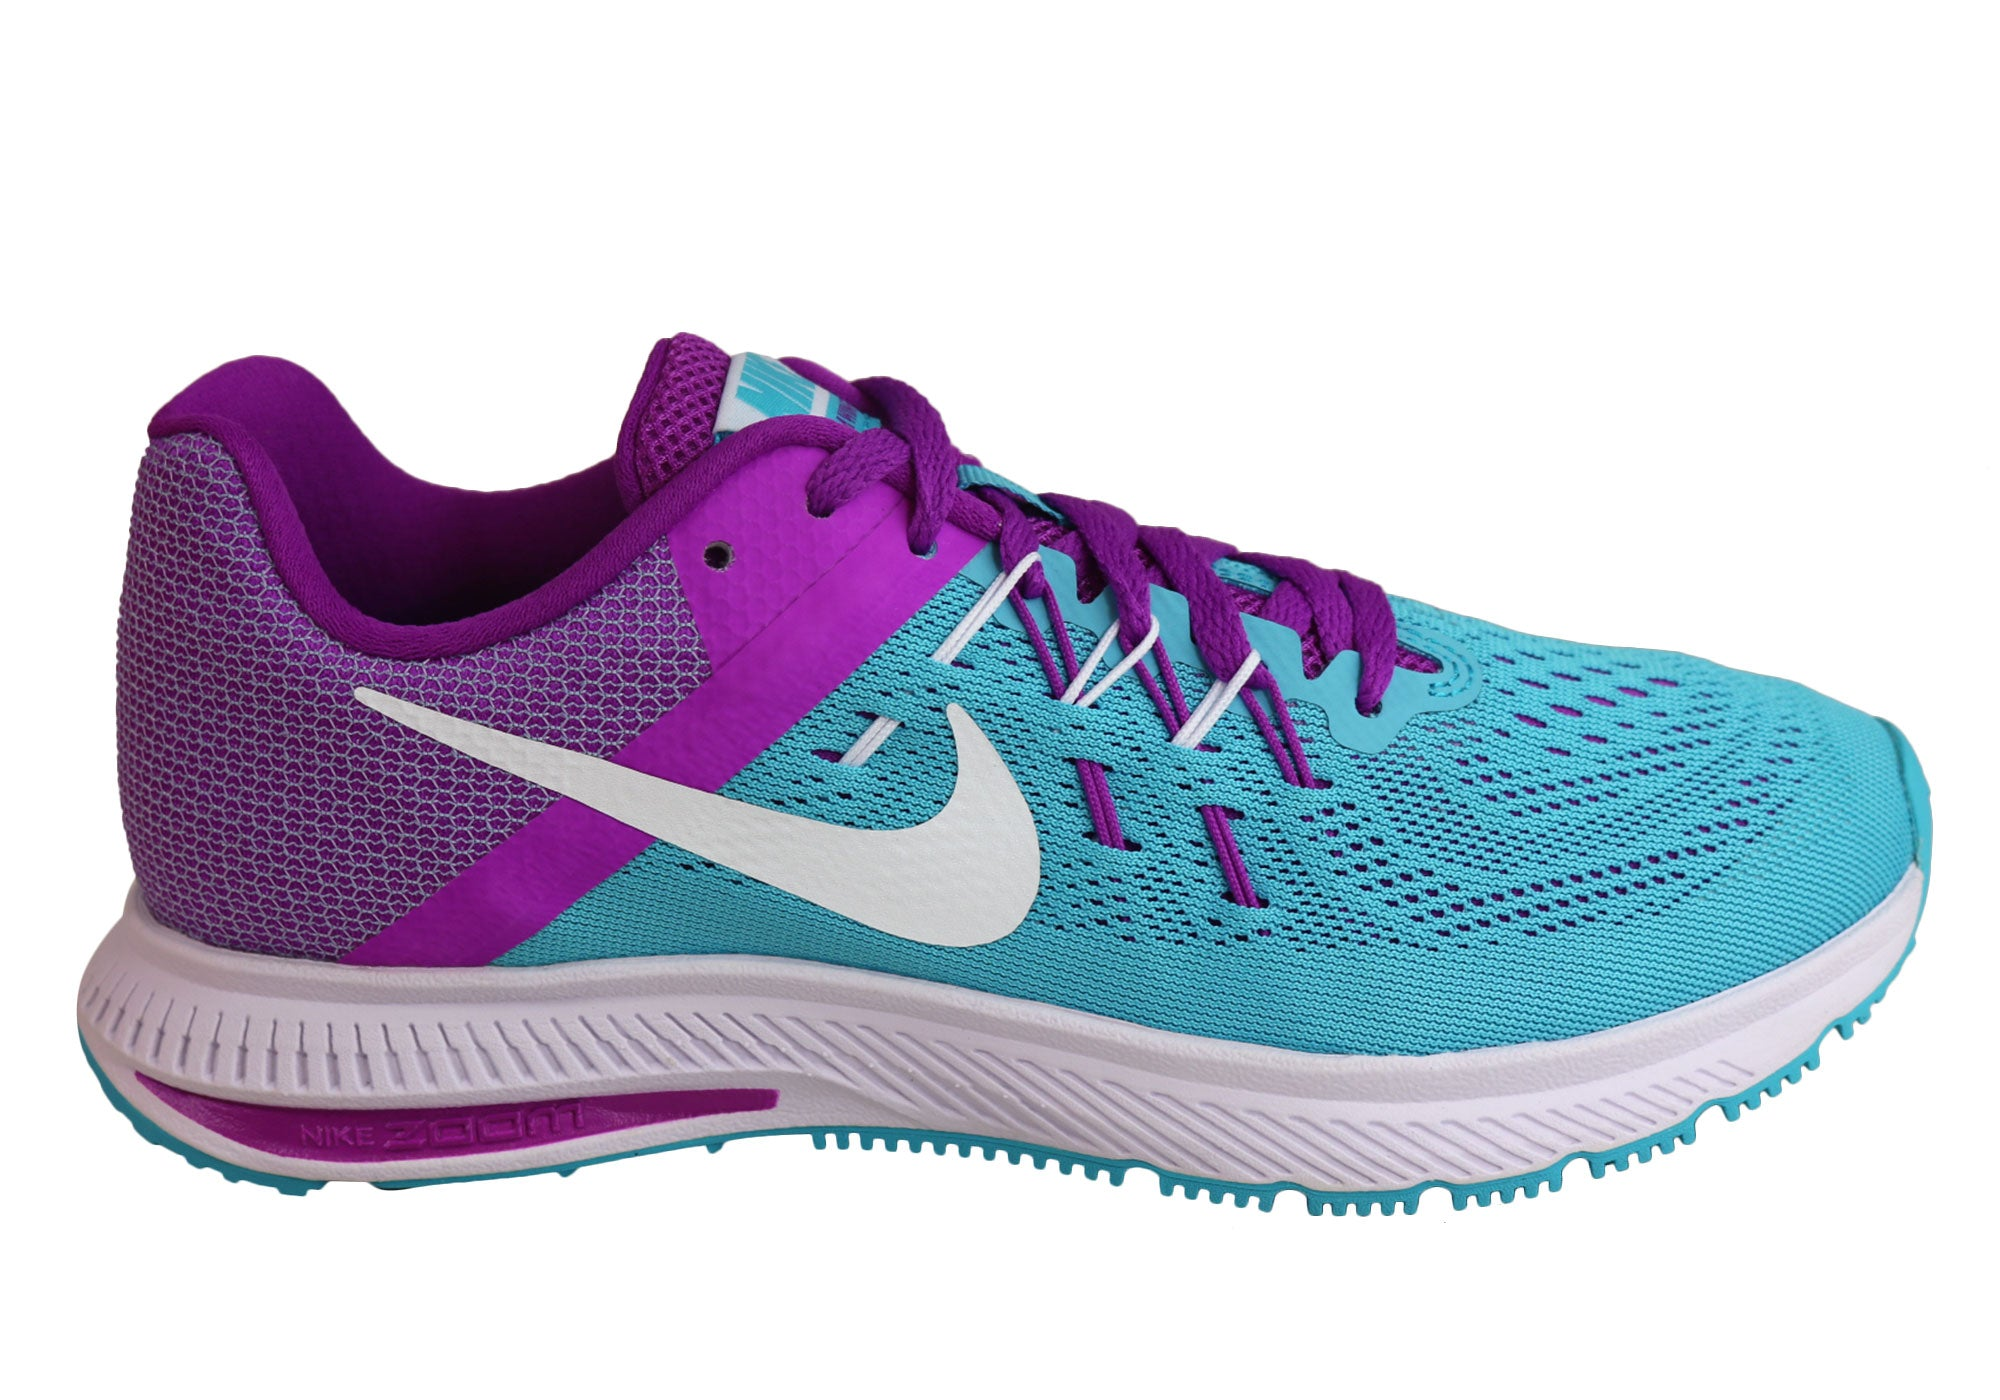 online retailer a6b3e cd521 Home Womens Nike Zoom Winflo 2 Running Sport Shoes. Gamma Blue Violet ...